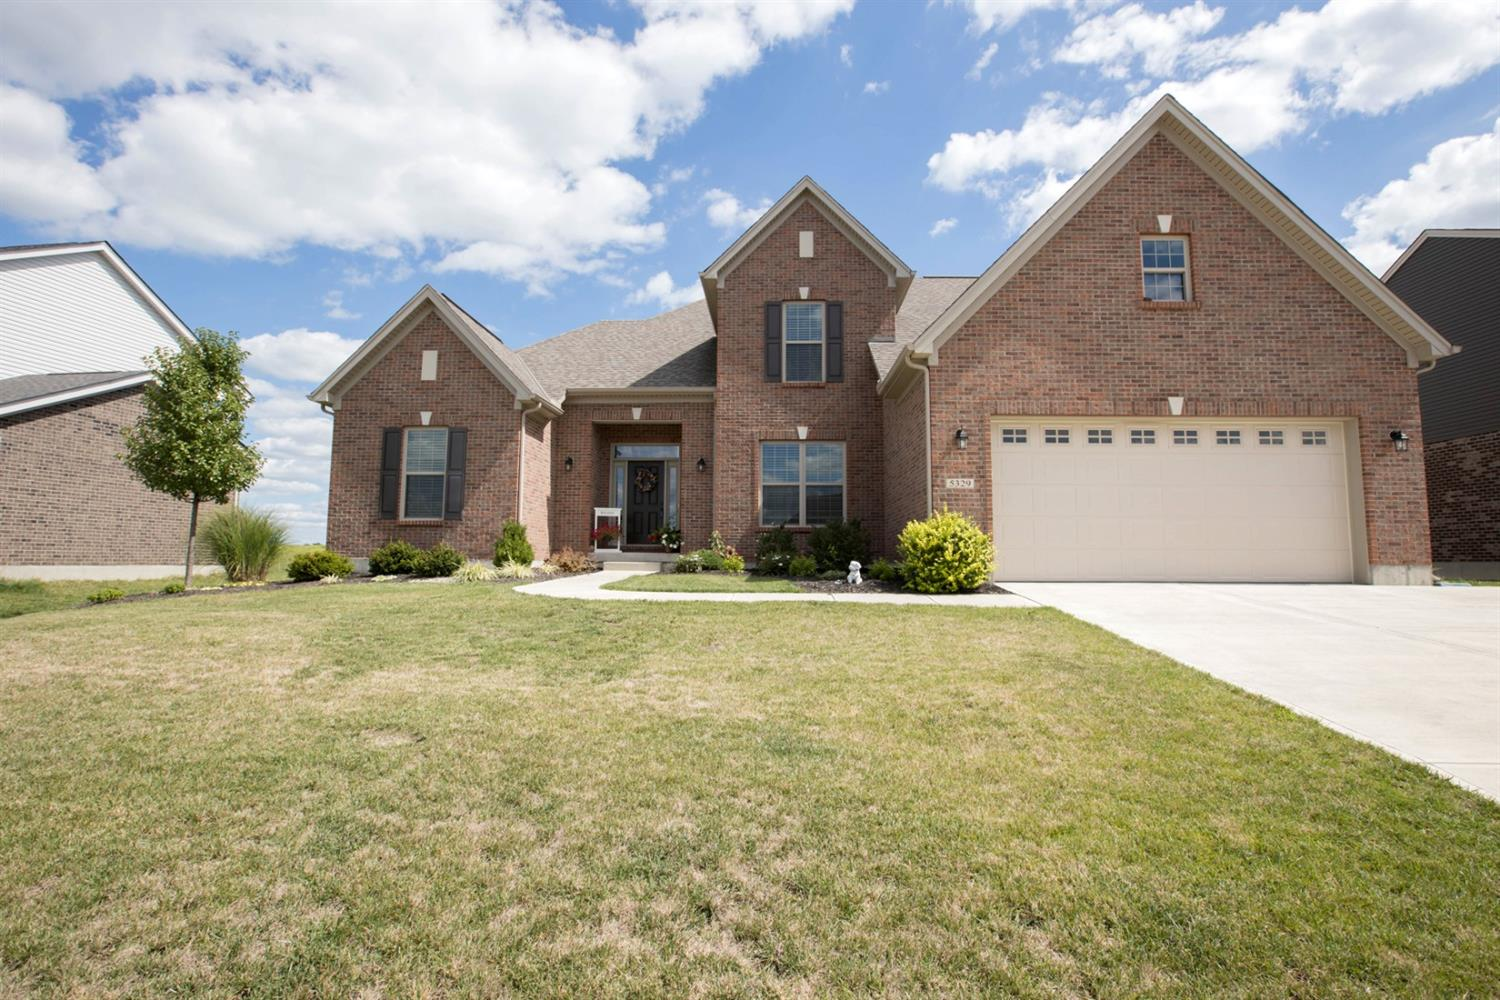 Property for sale at 5329 Mariners Way, Liberty Twp,  Ohio 45011